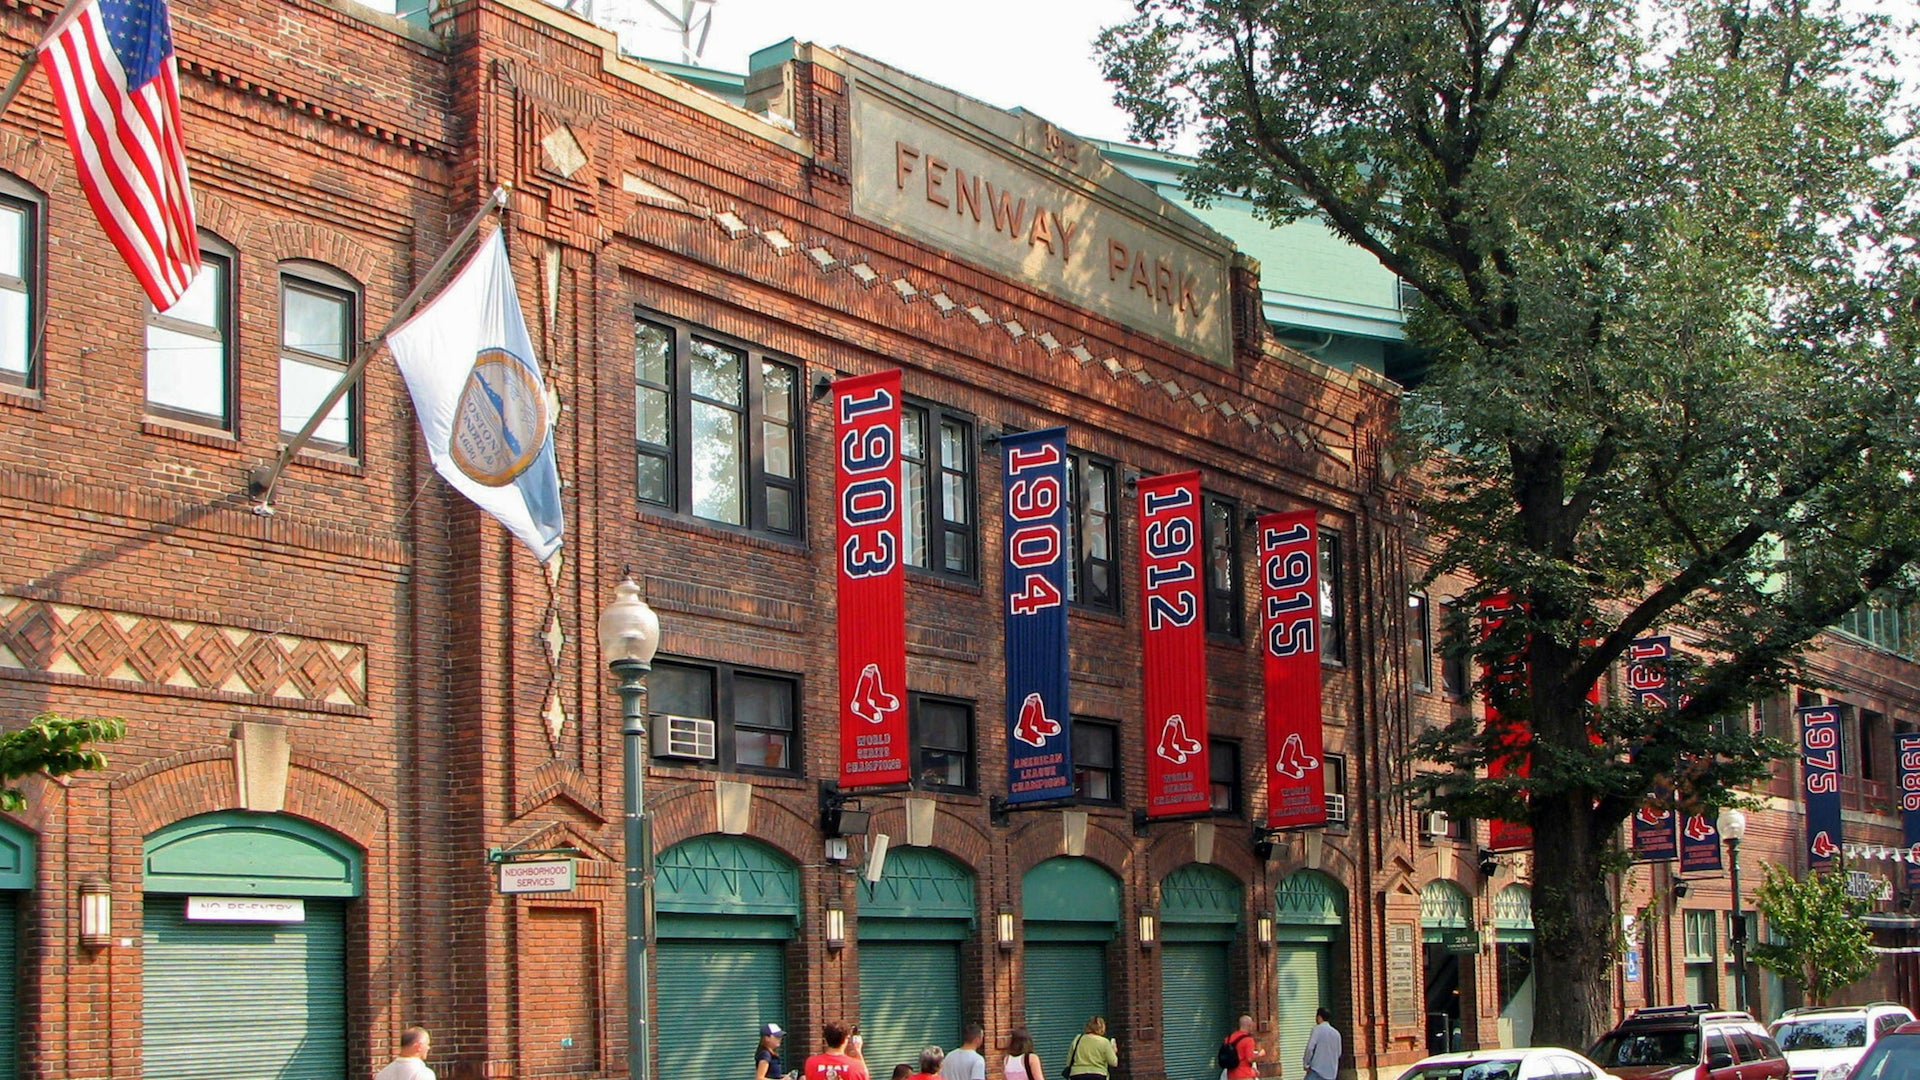 From Yawkey to Jersey Street